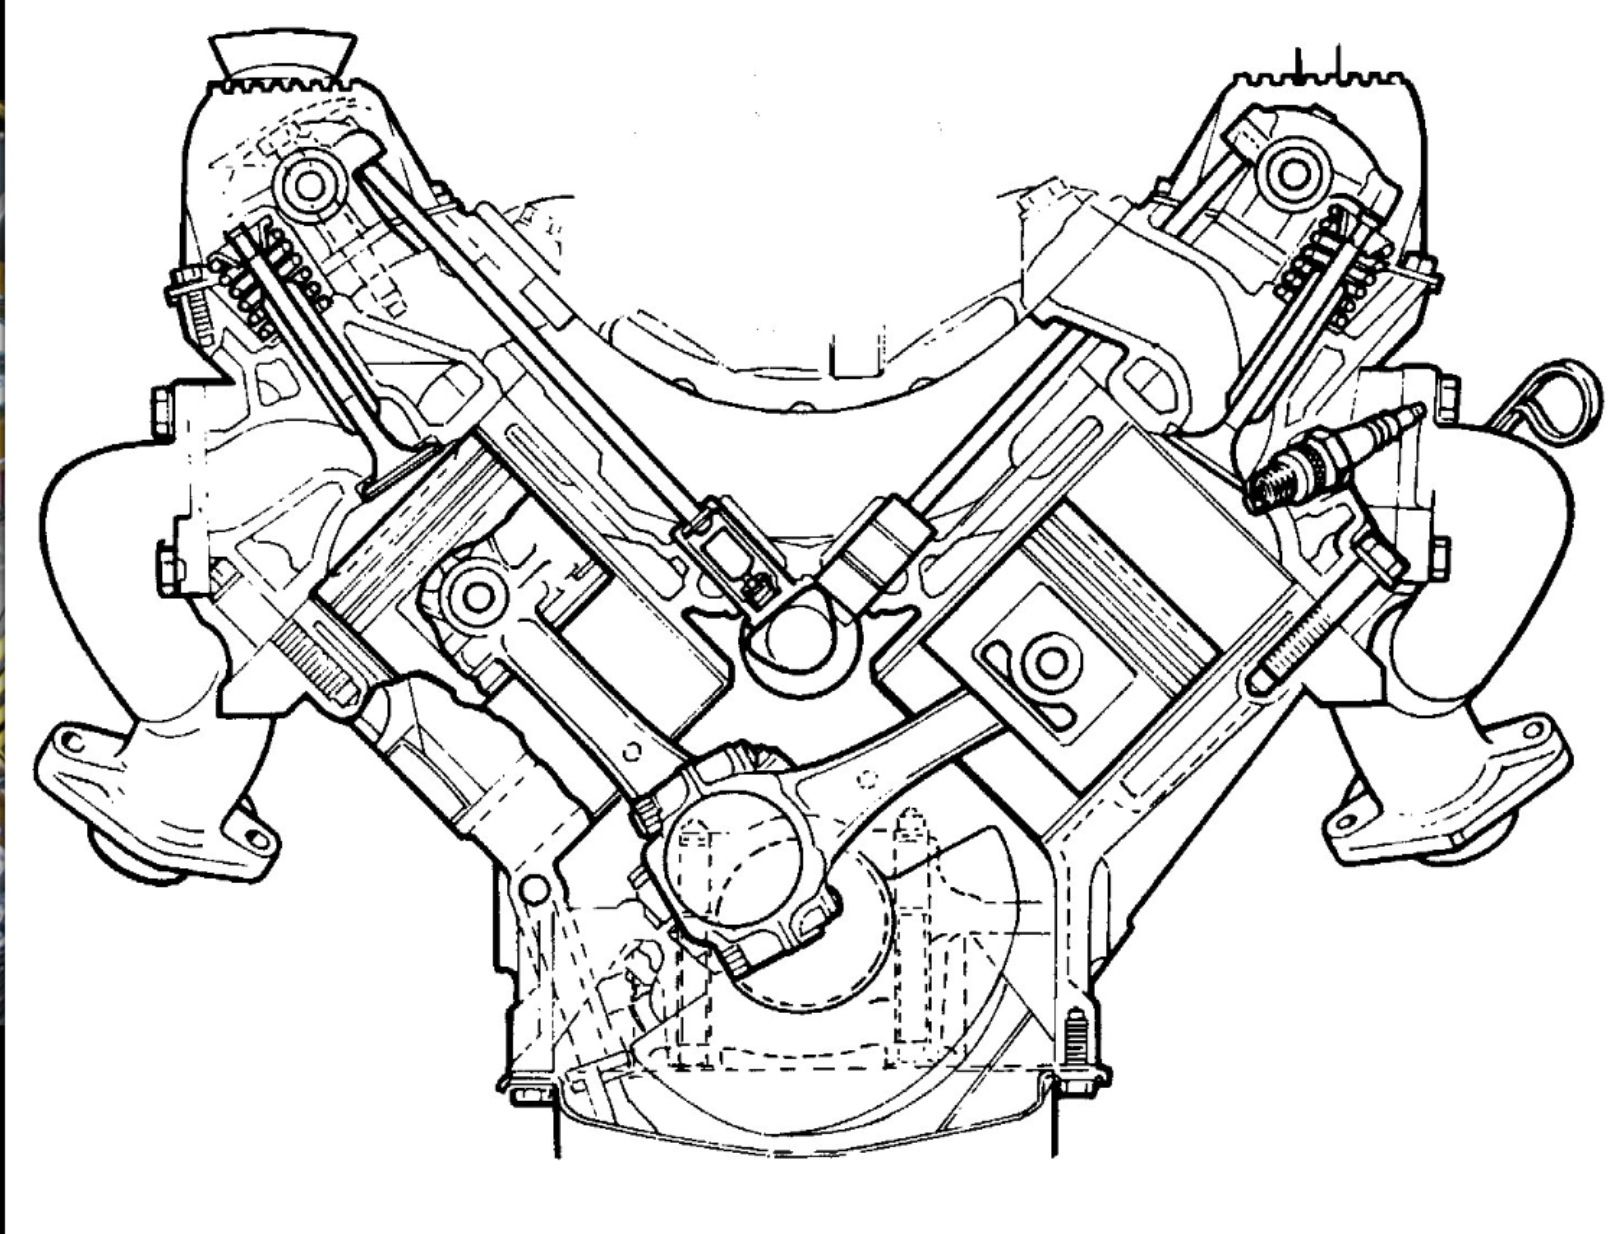 A Sectional View Of The Rover V8 Engine A Masterpiece Of